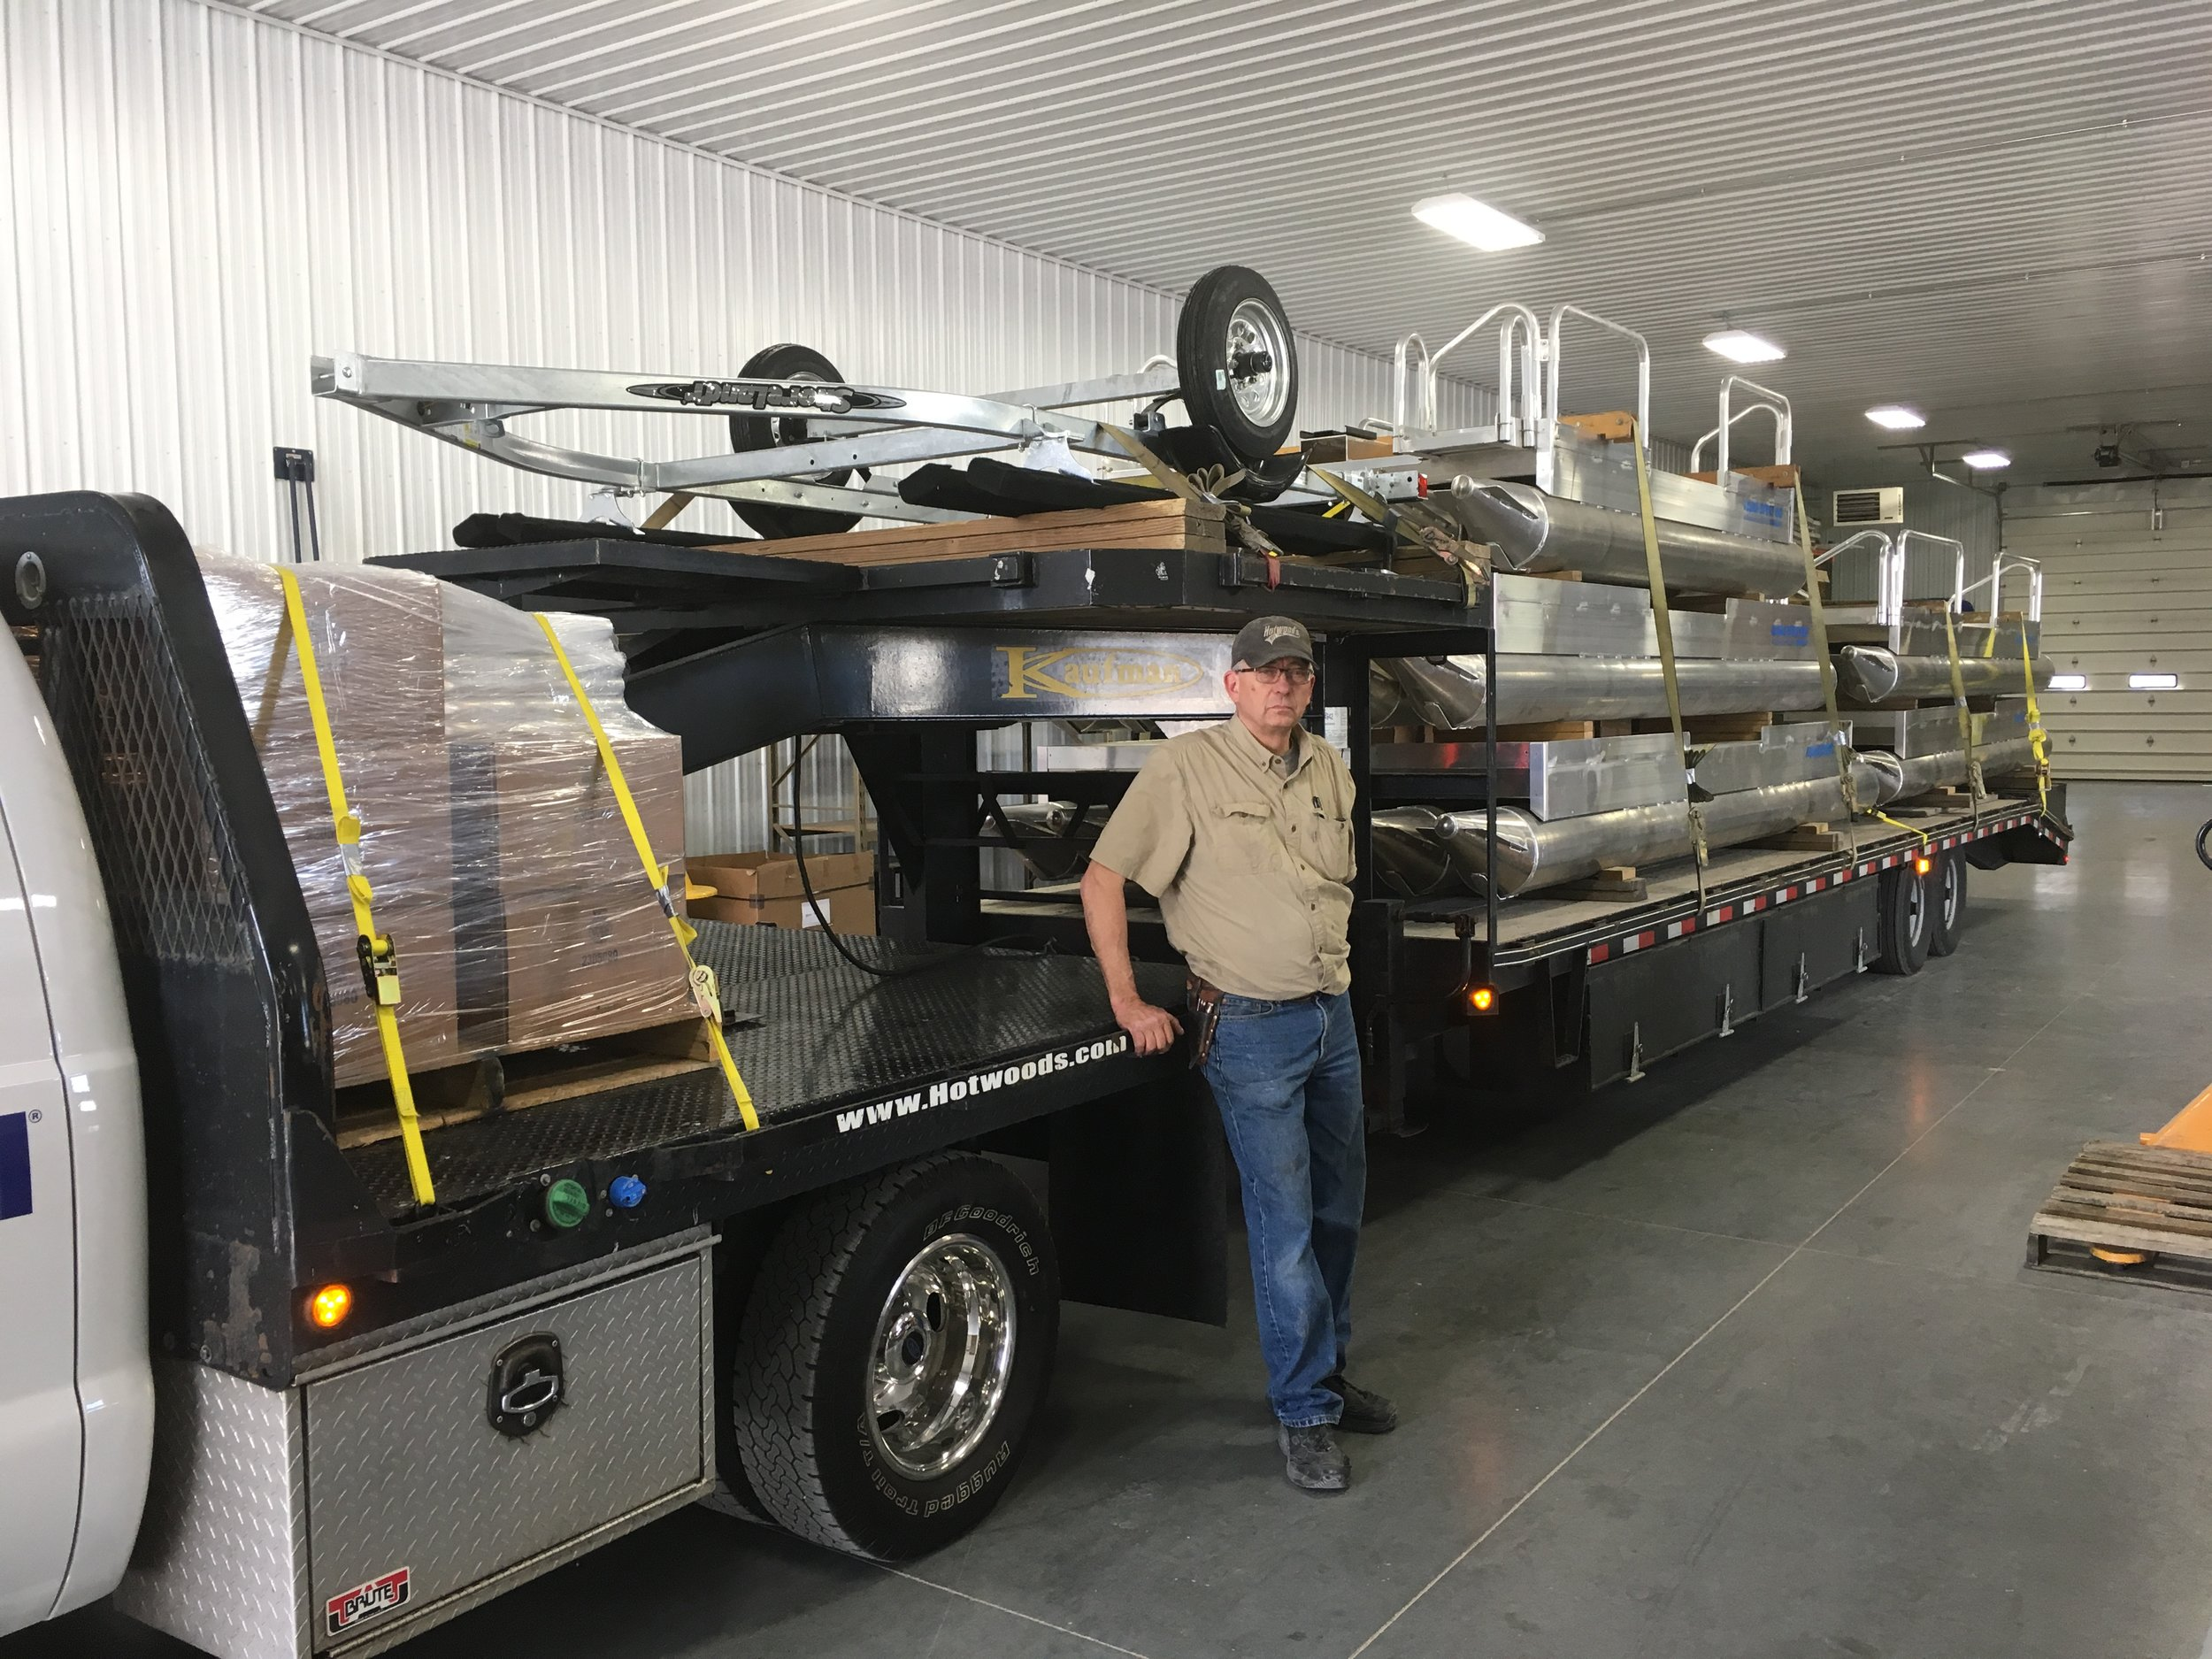 One of our valued drivers Marv getting ready to take off with 5 more boats to customers out east. Marv Has been delivering and working here at Hotwoods for many years.